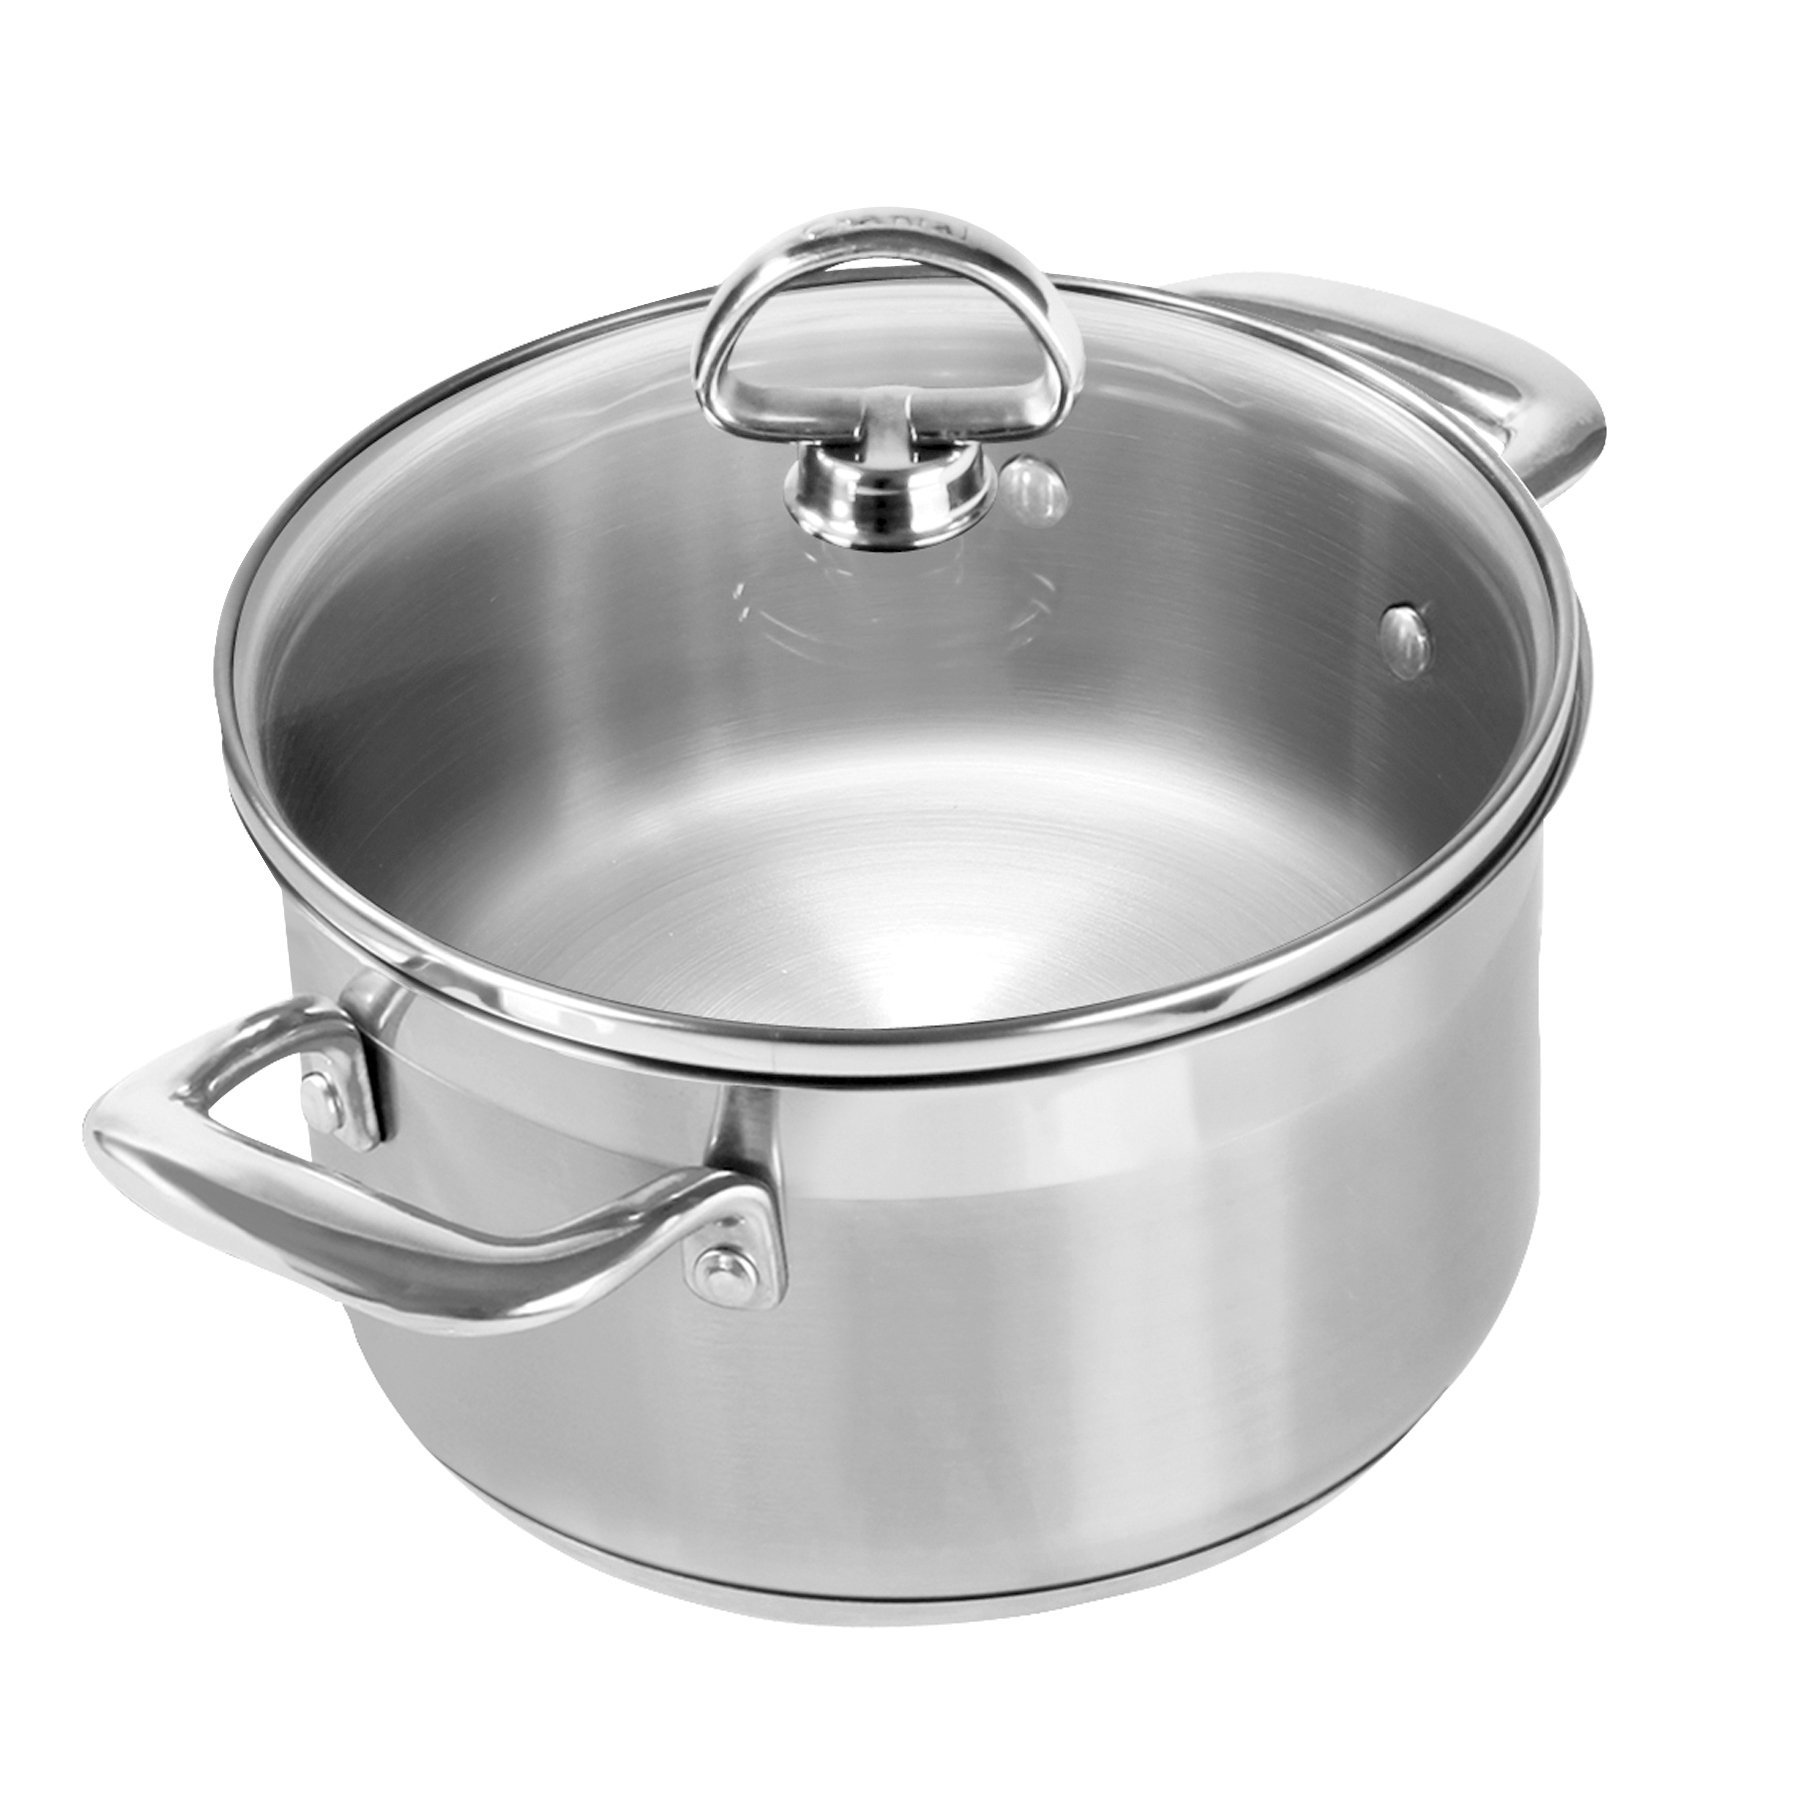 Chantal SLIN32-160 Induction 21 Steel Soup Pot with Glass Tempered Lid (2-Quart)